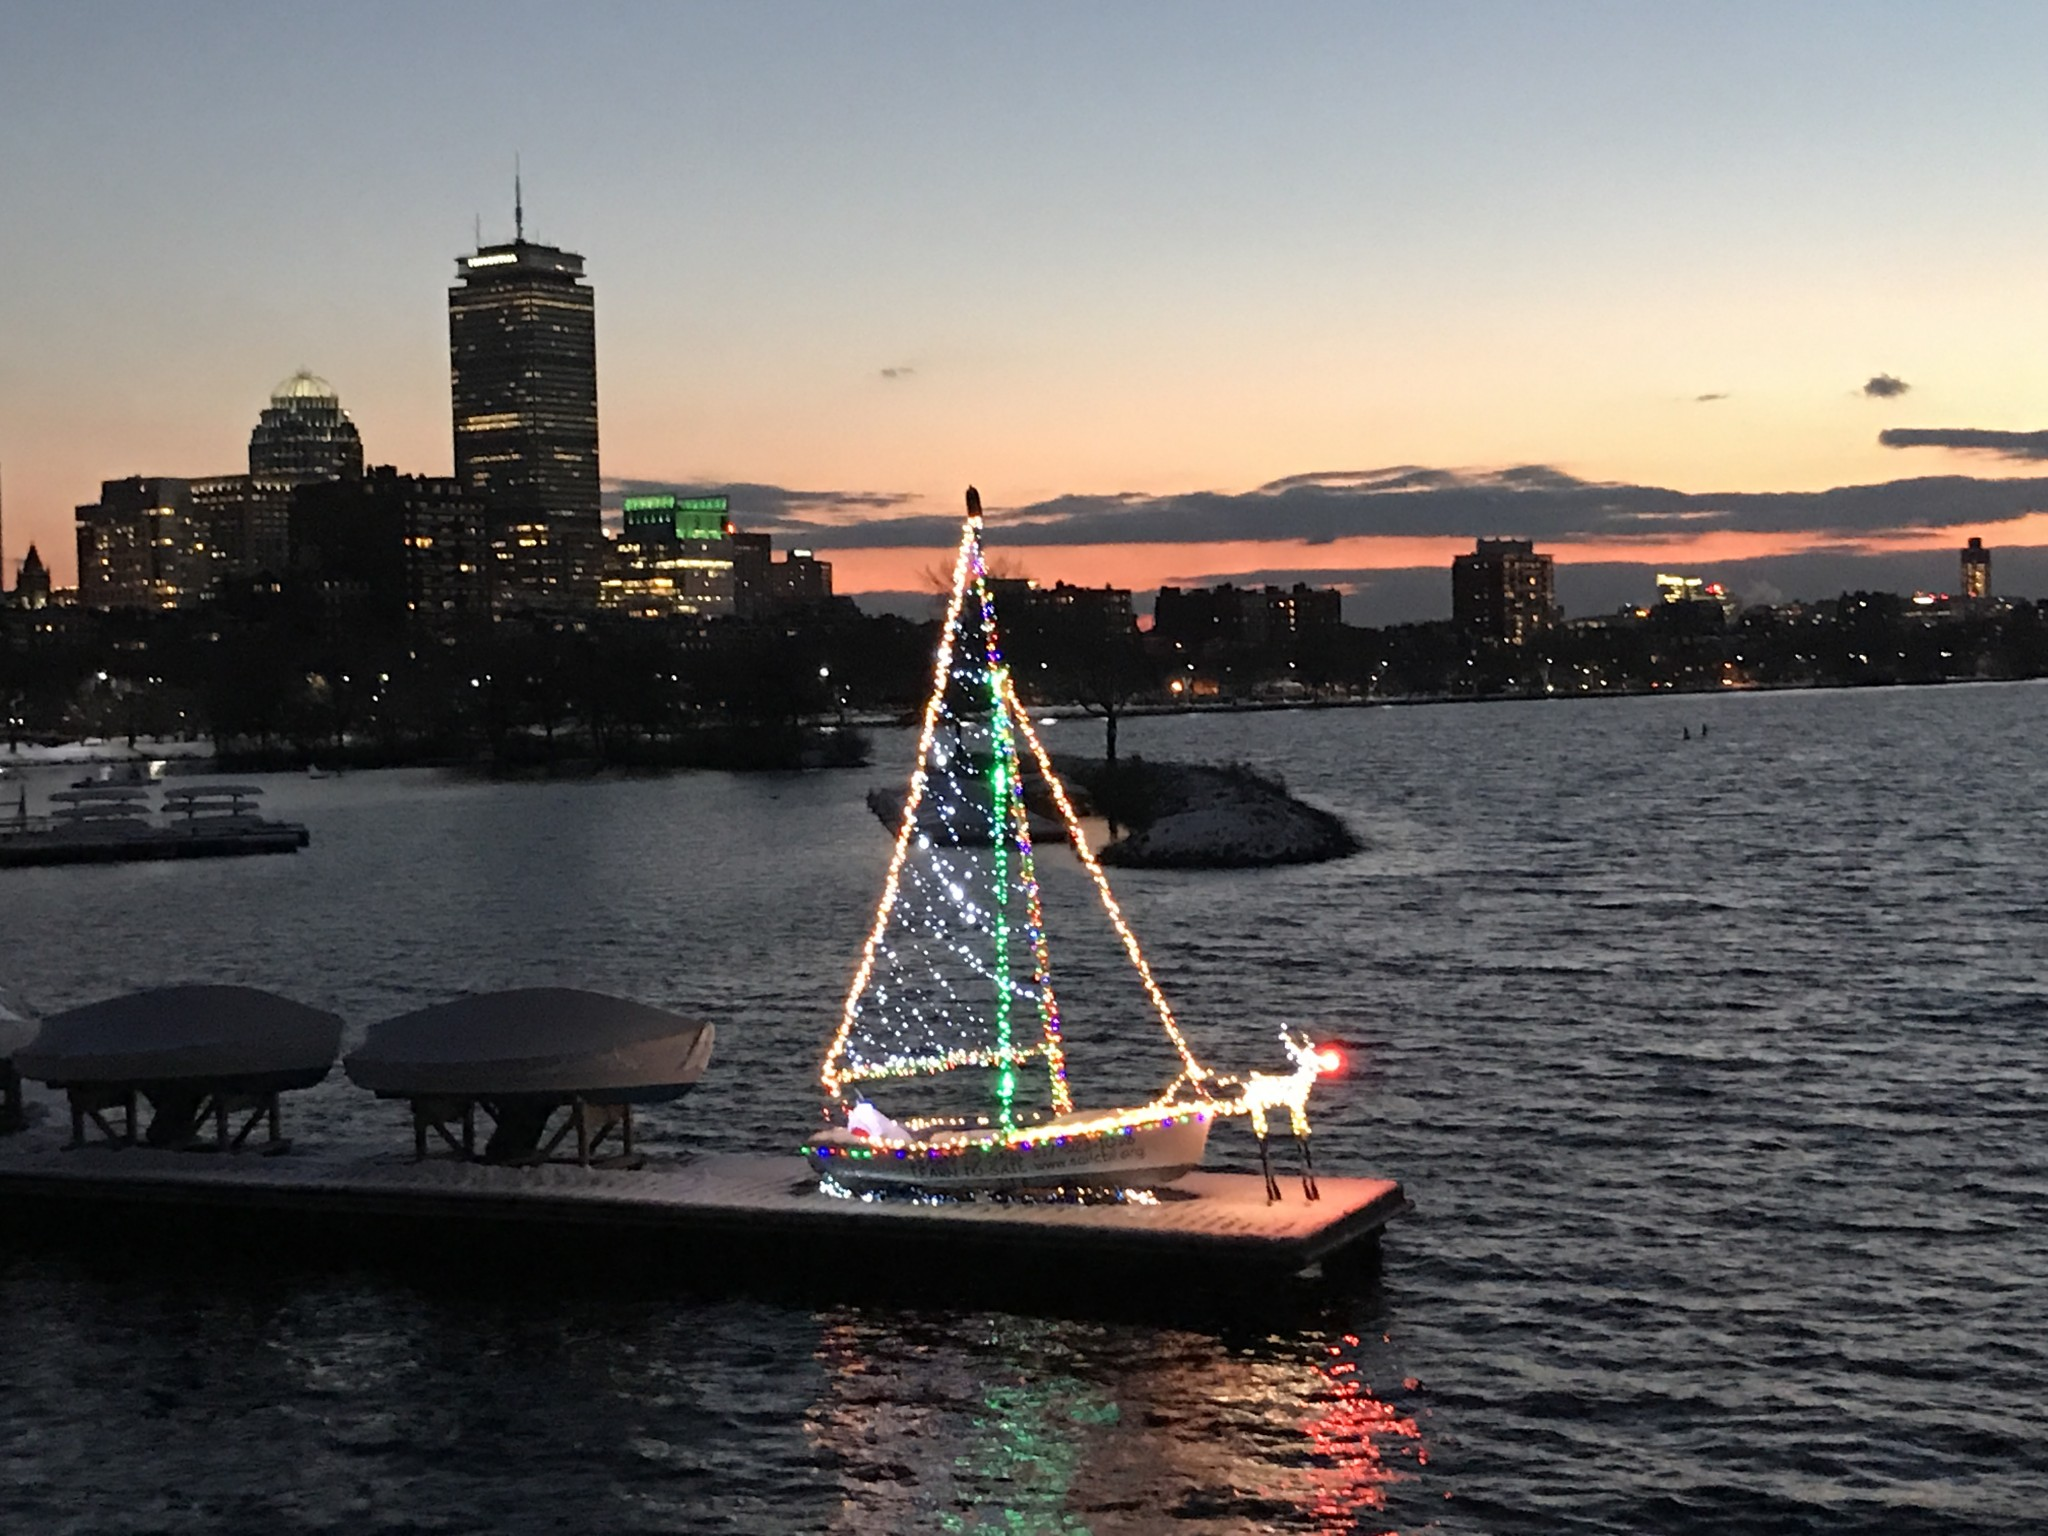 community boating boston, holiday lights in boston, the-alyst.com